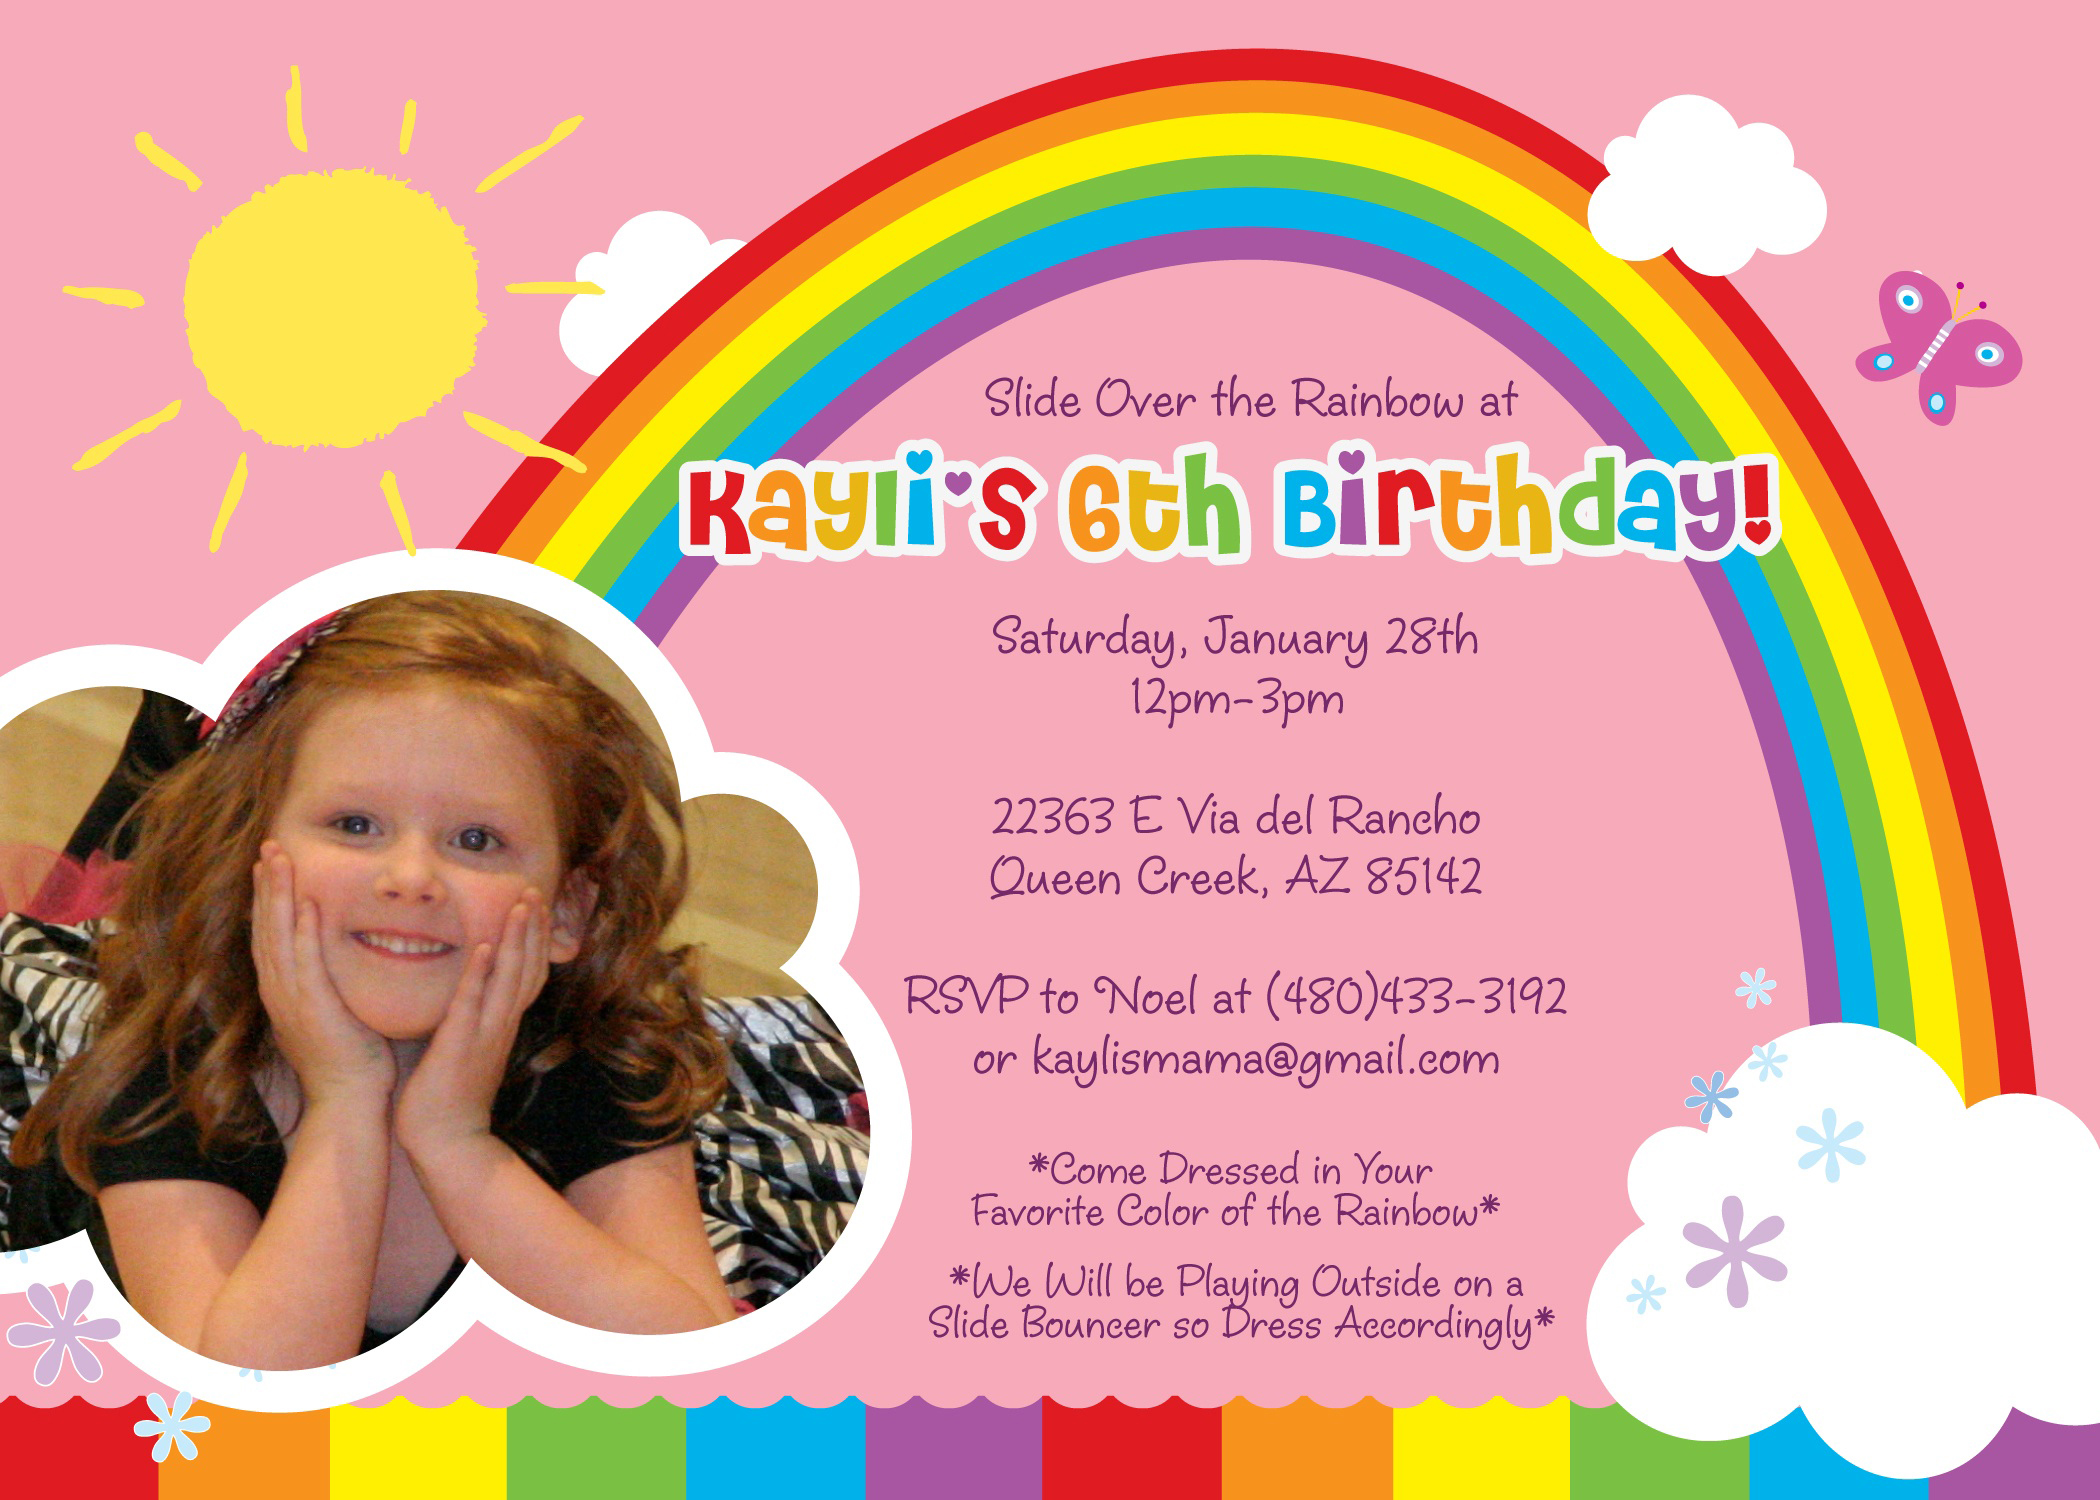 3rd birthday party invitation quotes ; 3Rd-Birthday-Party-Invitation-Message-to-get-ideas-how-to-make-your-own-birthday-Invitation-design-3